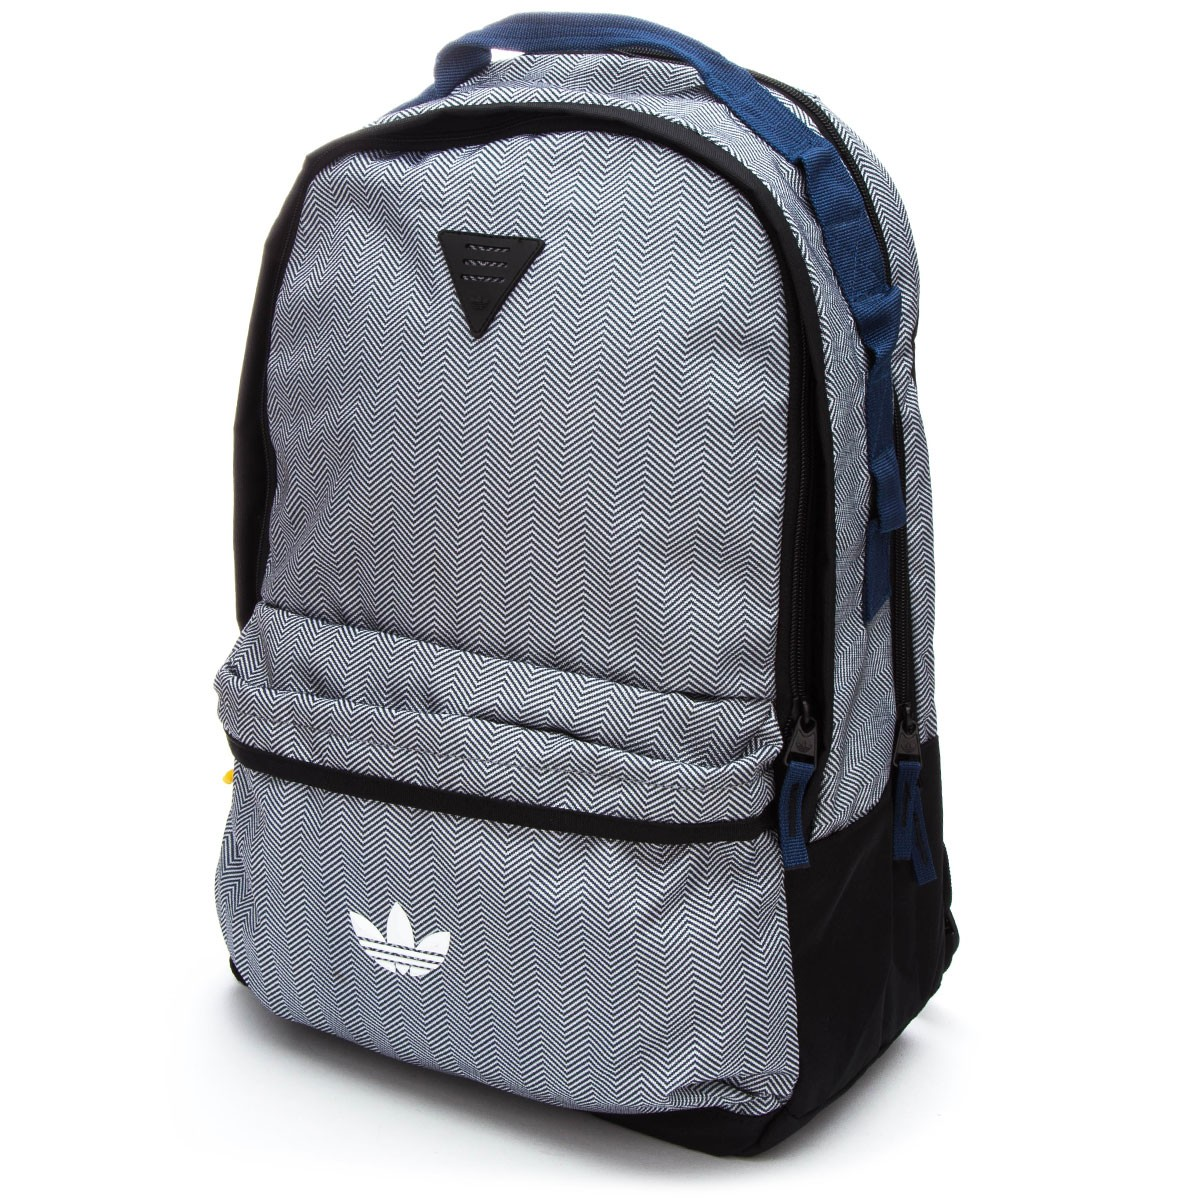 backpack adidas originals on sale   OFF51% Discounts 751874cdd7967